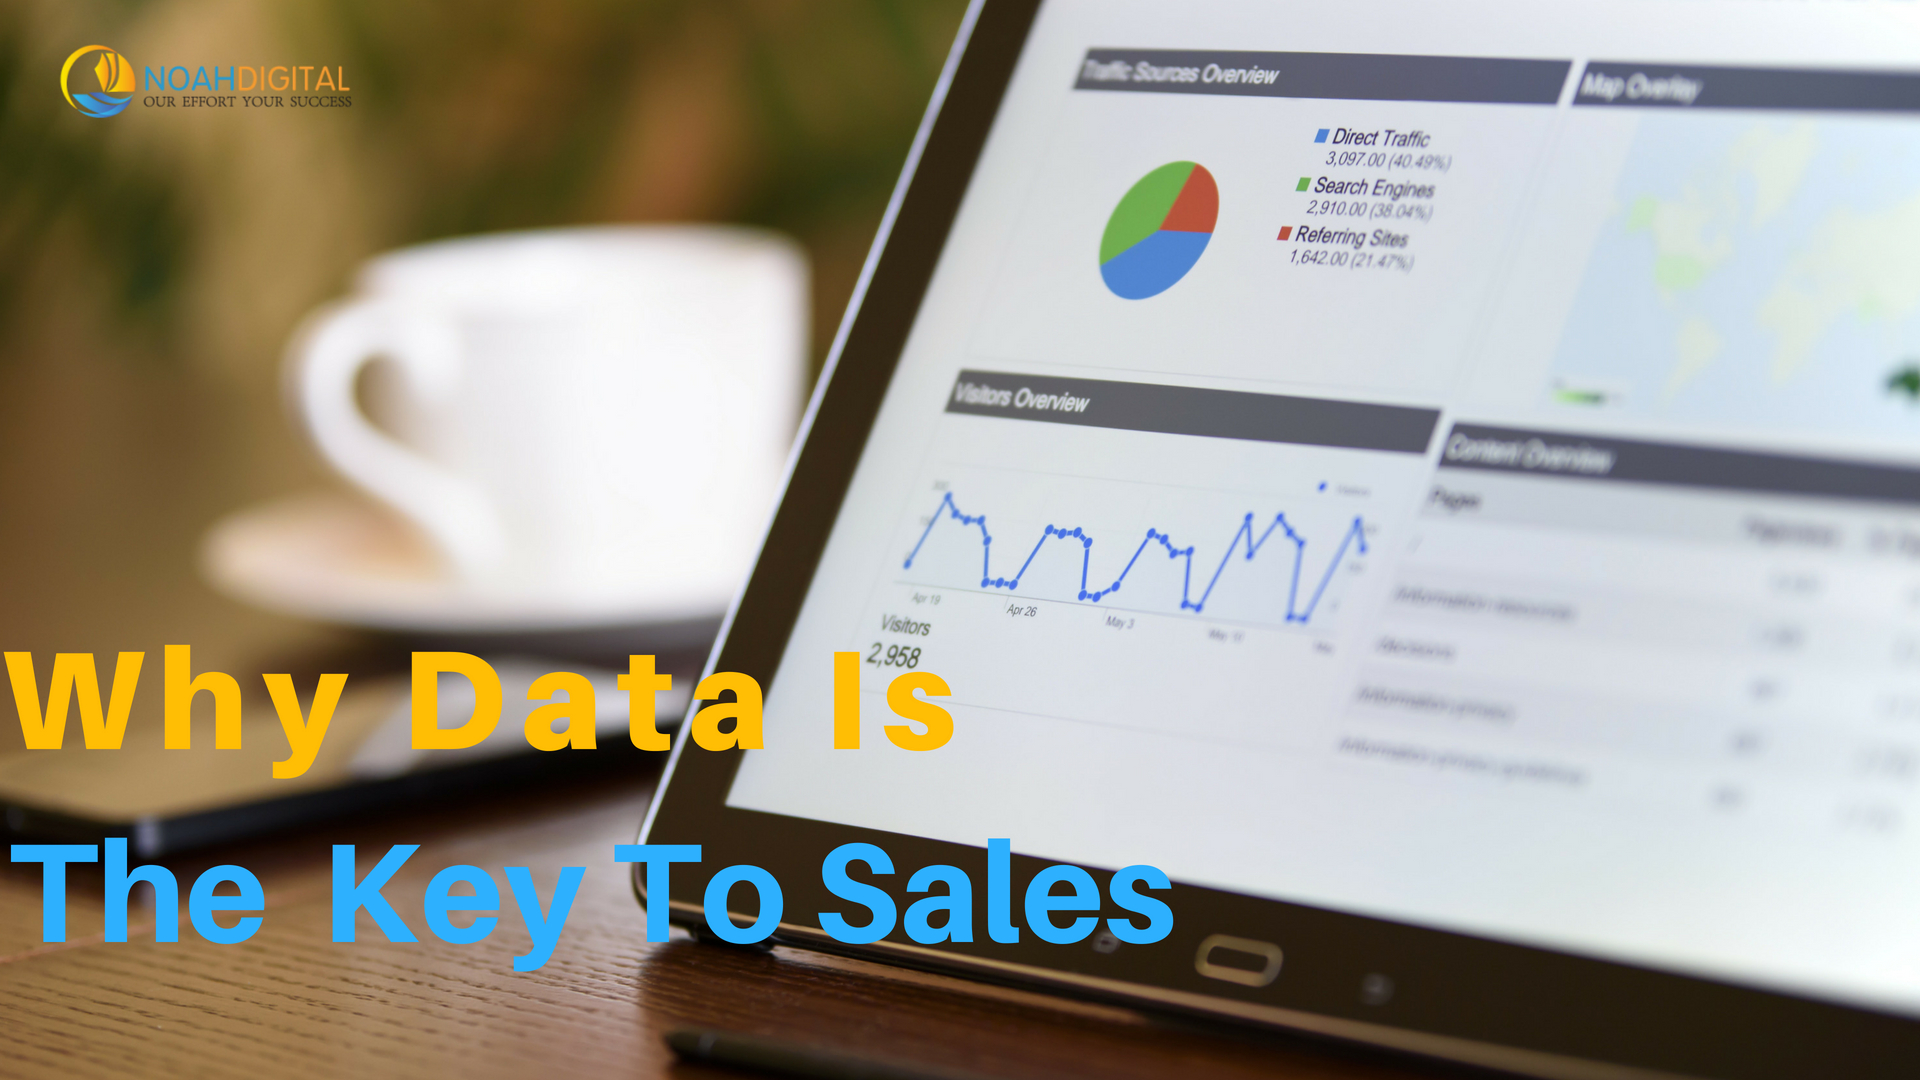 Data is the key to sales